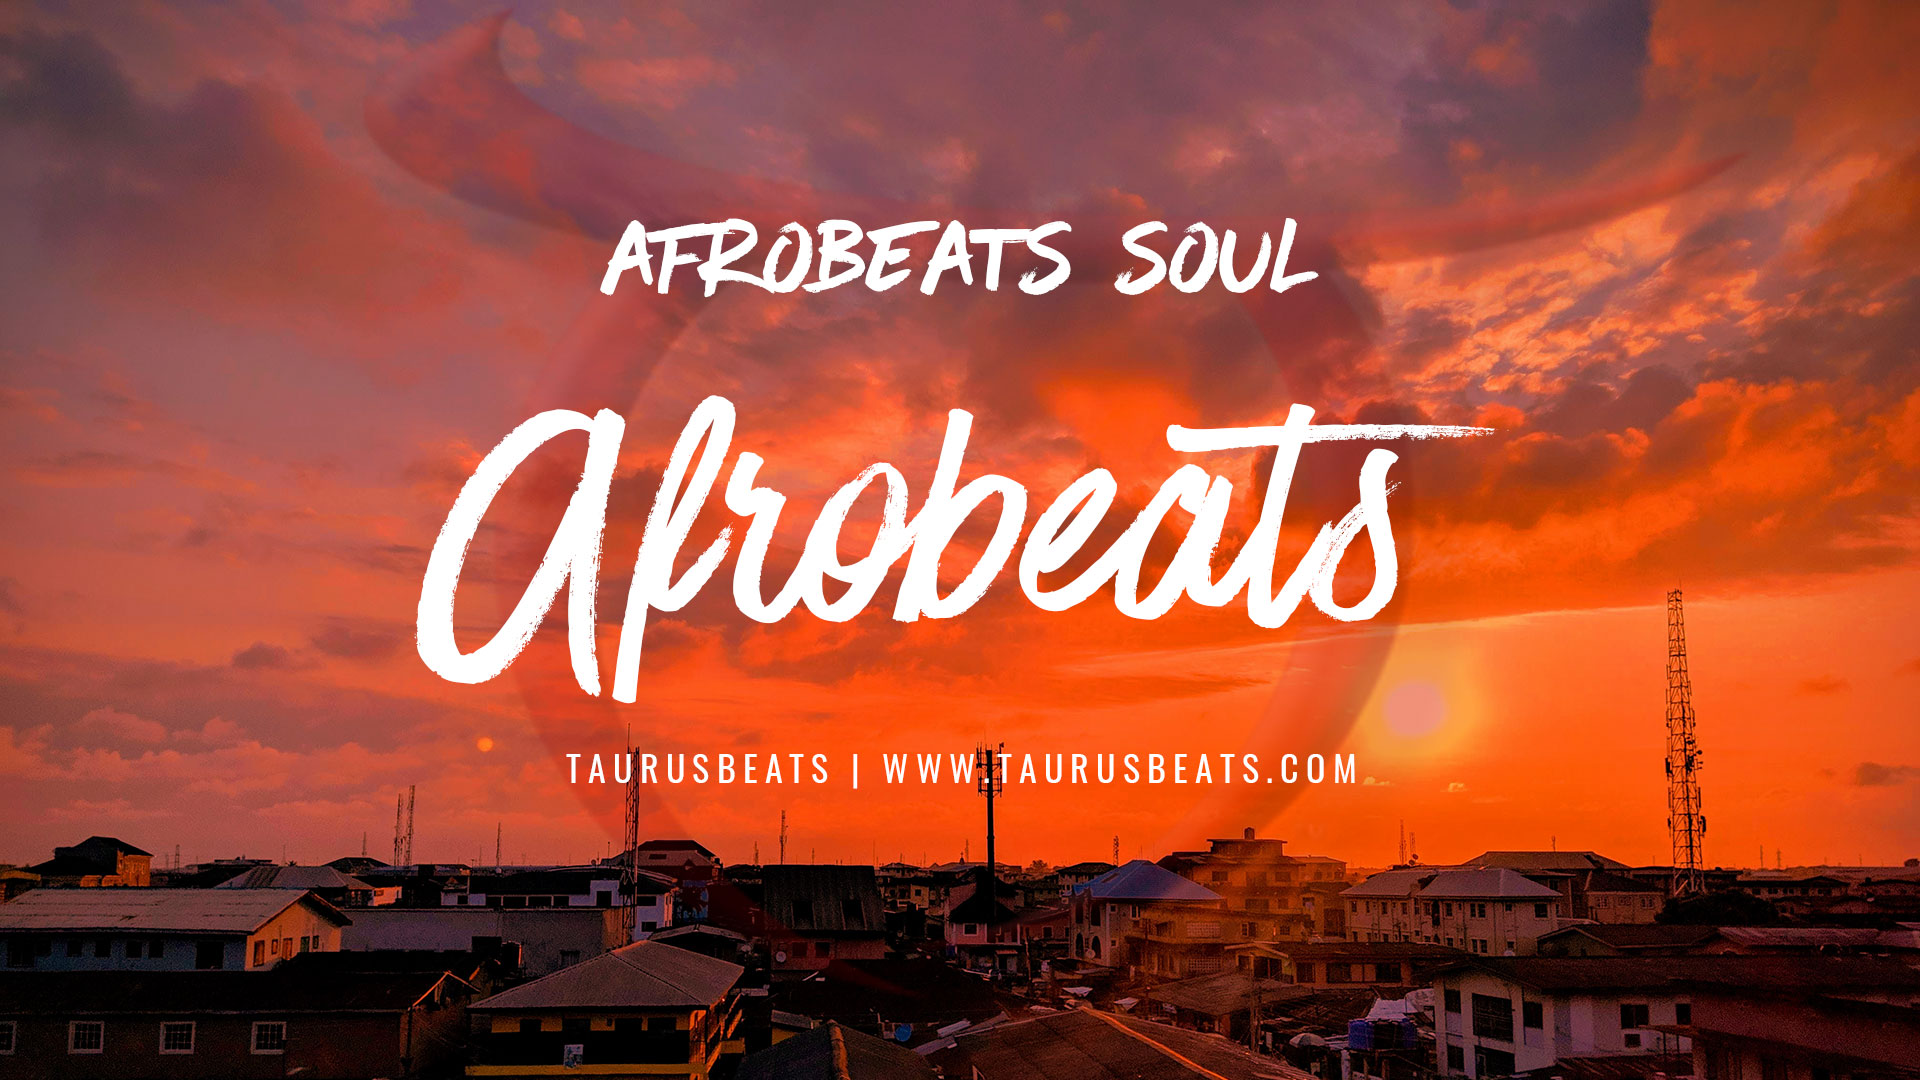 image for Afrobeats (2021)